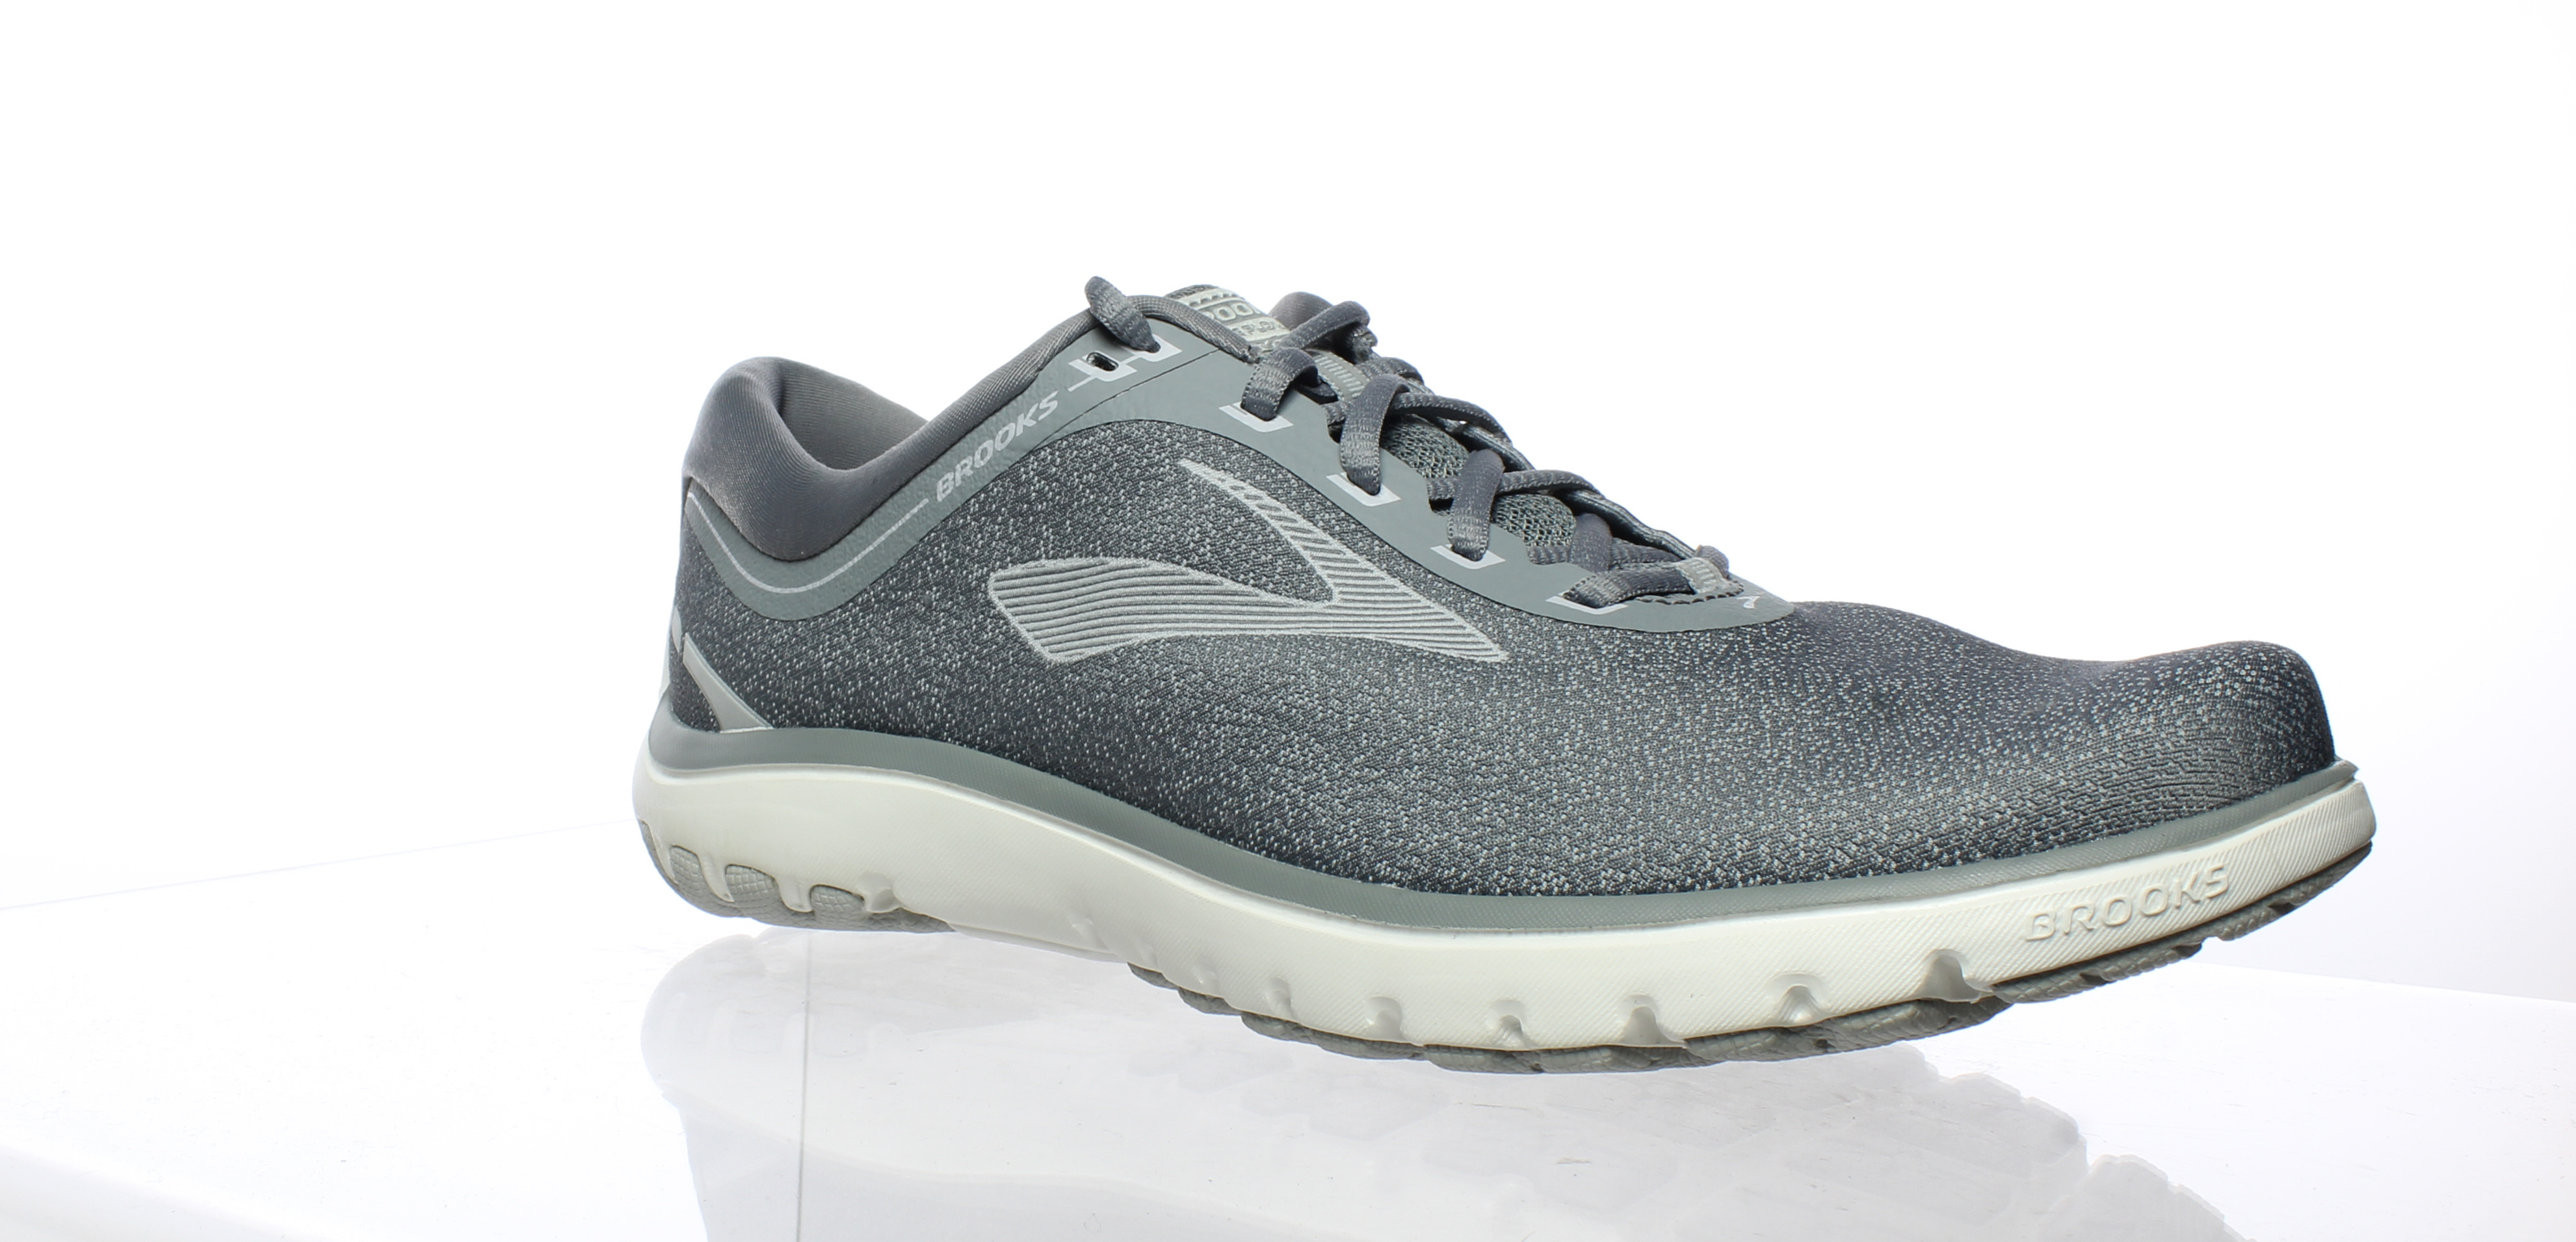 ede57adad50 Brooks Womens Pureflow 7 Gray Running Shoes Size 12 (176846 ...